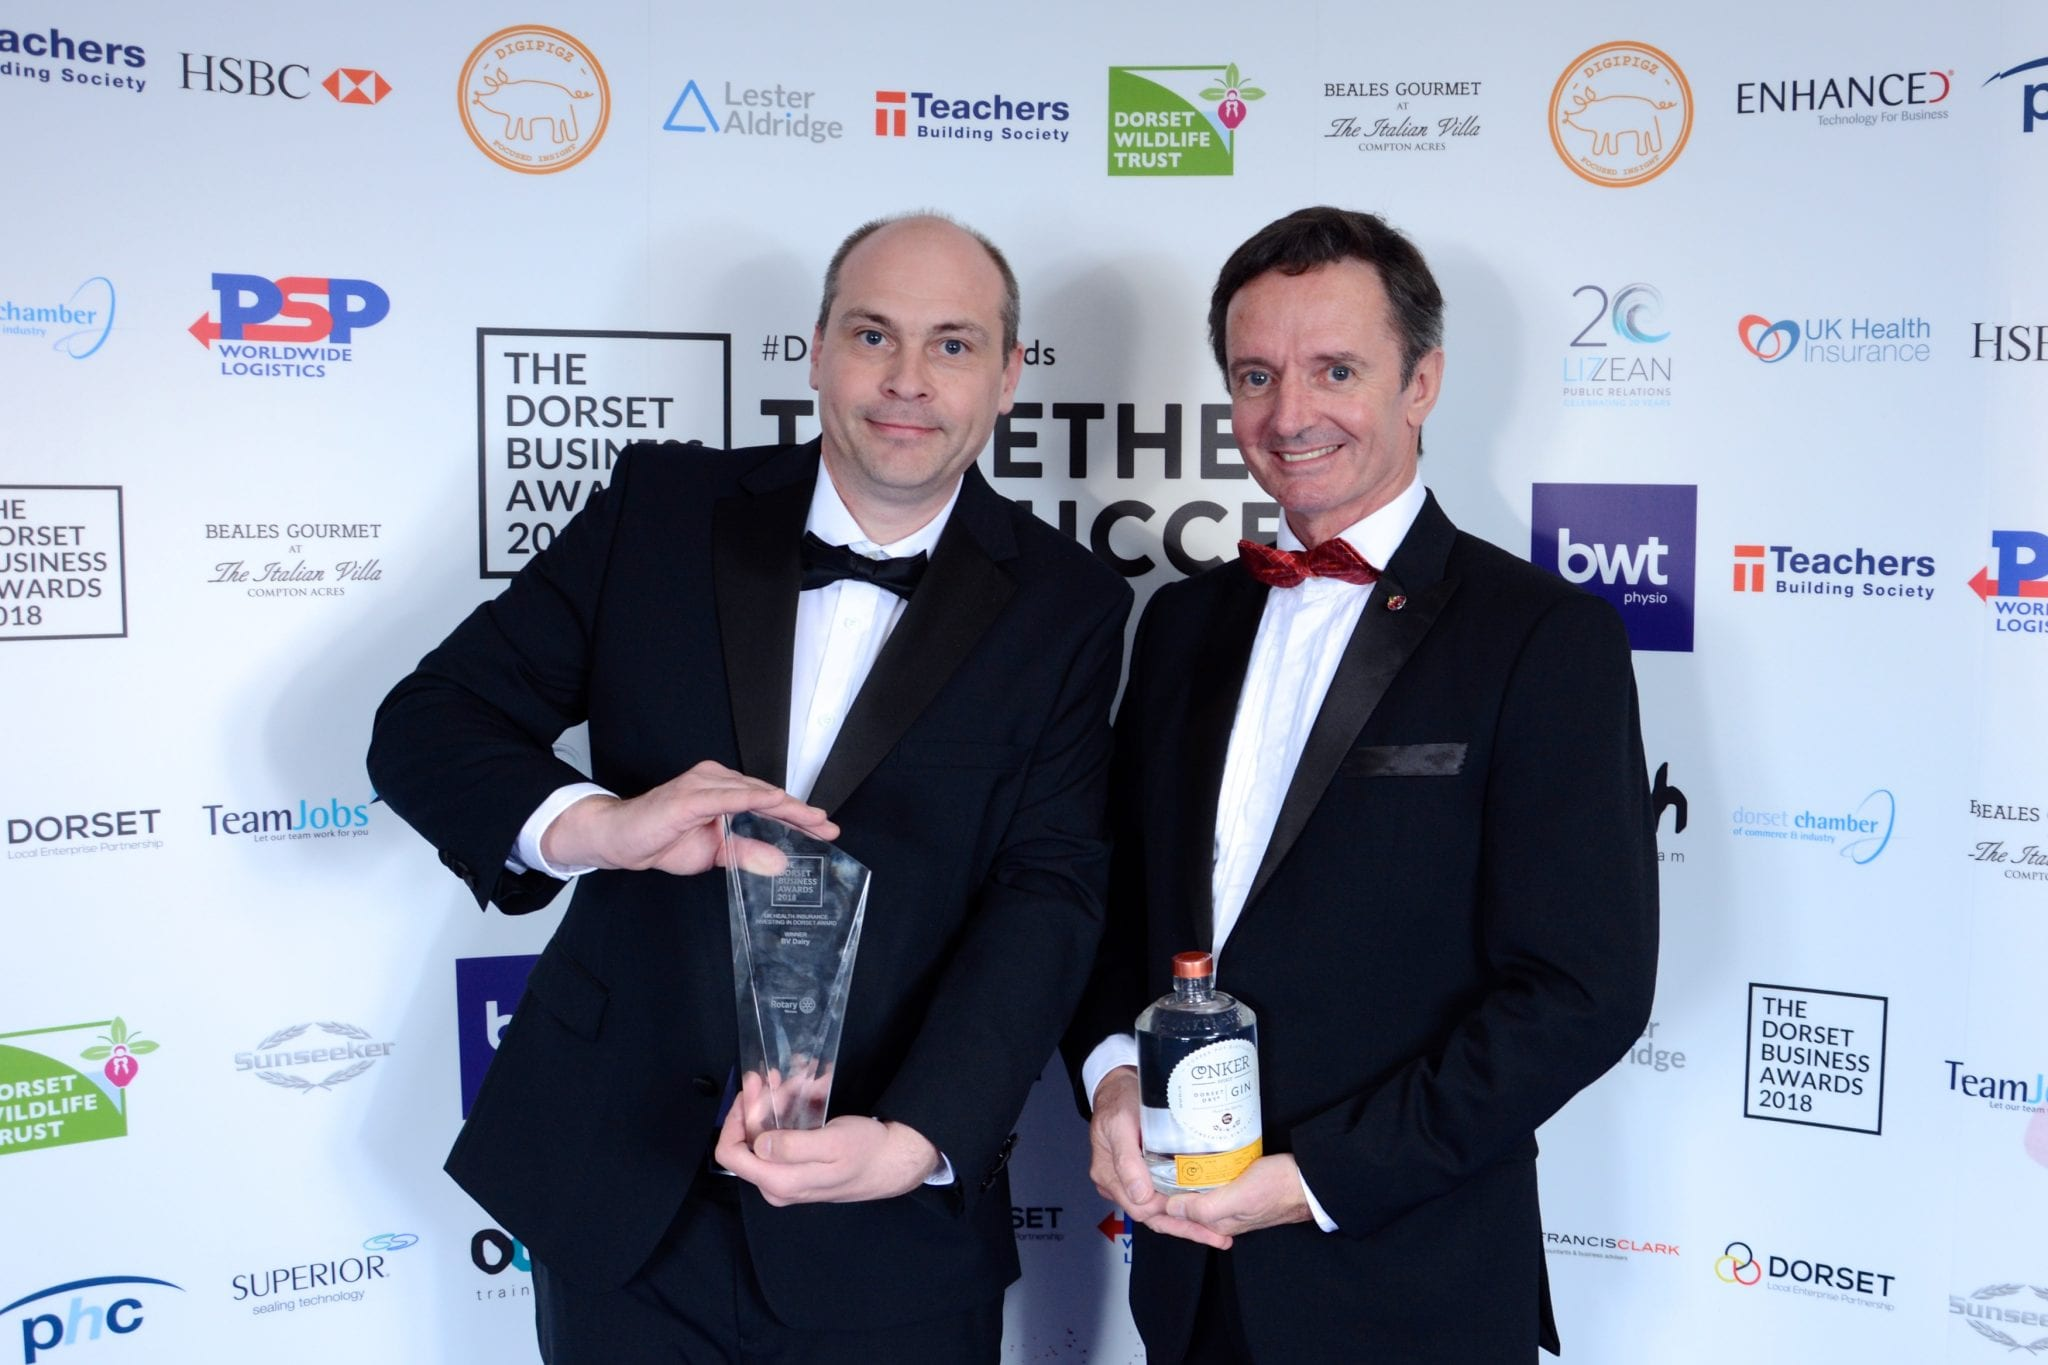 UK HEALTH INSURANCE INVESTING IN DORSET AWARD WINNER BV Dairy